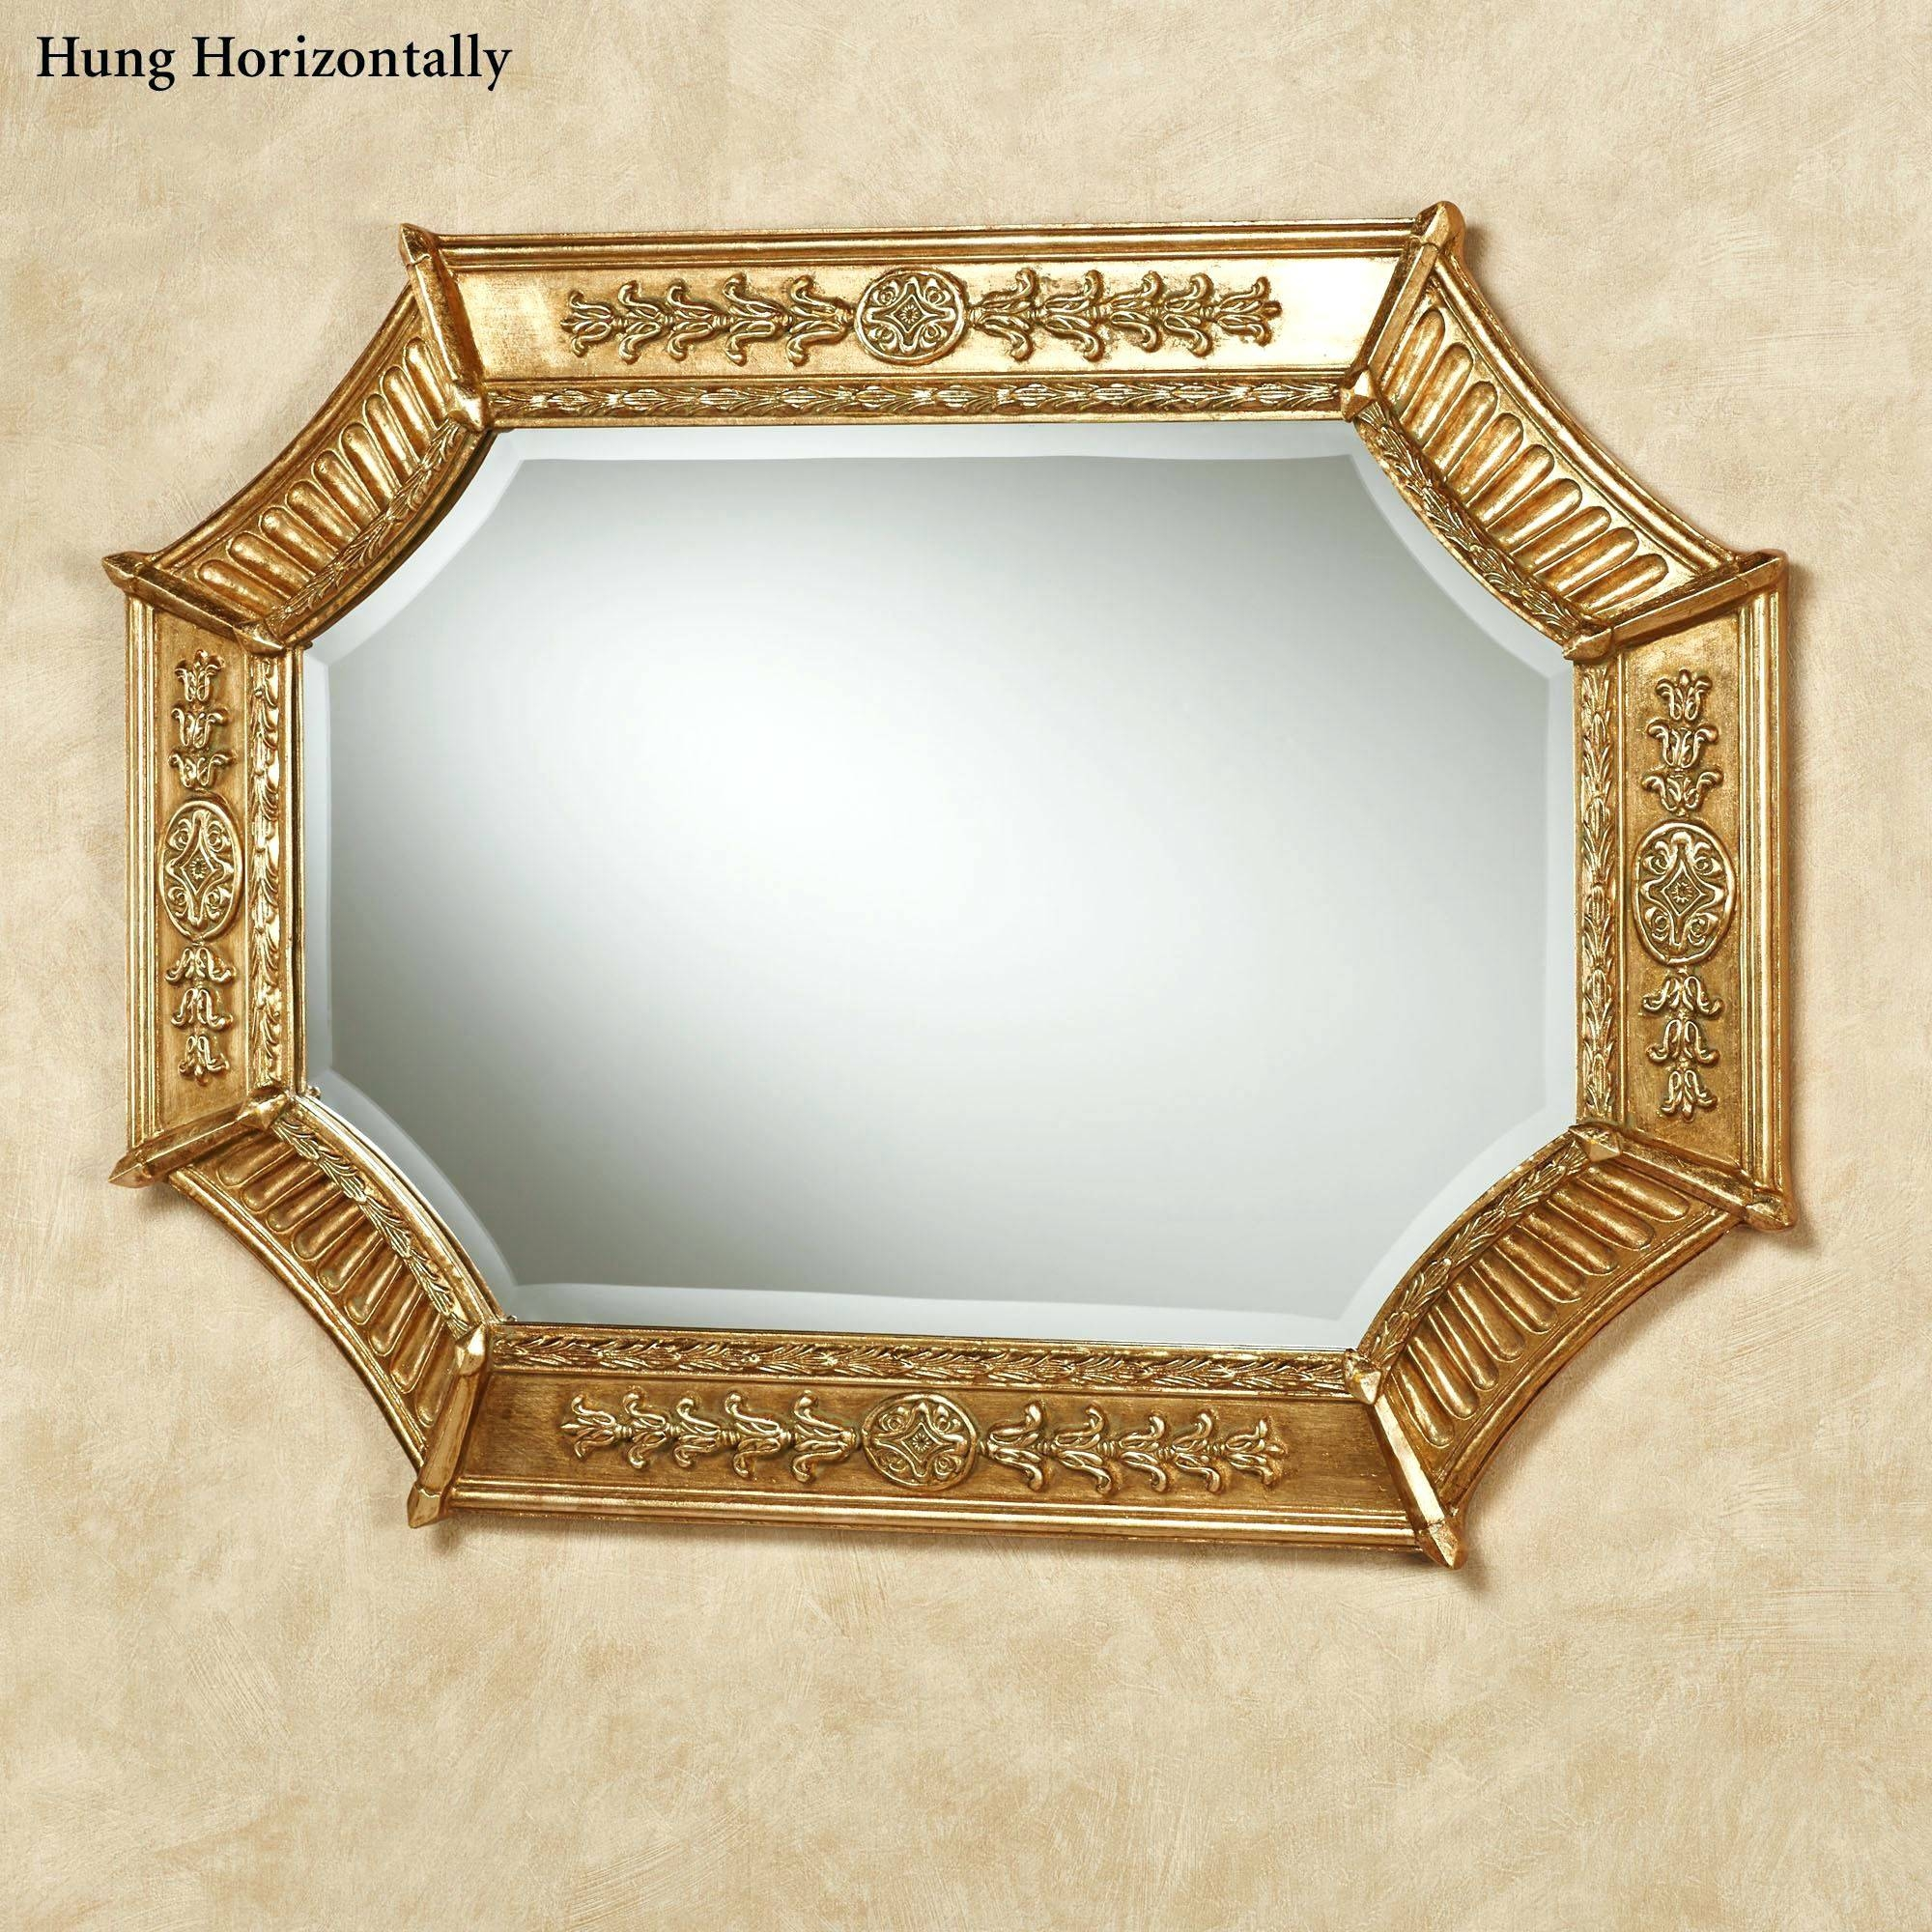 Wall Mirrors ~ Rose Gold Round Wall Mirror Small Gold Wall Mirrors Intended For Large Round Gold Mirrors (View 9 of 15)